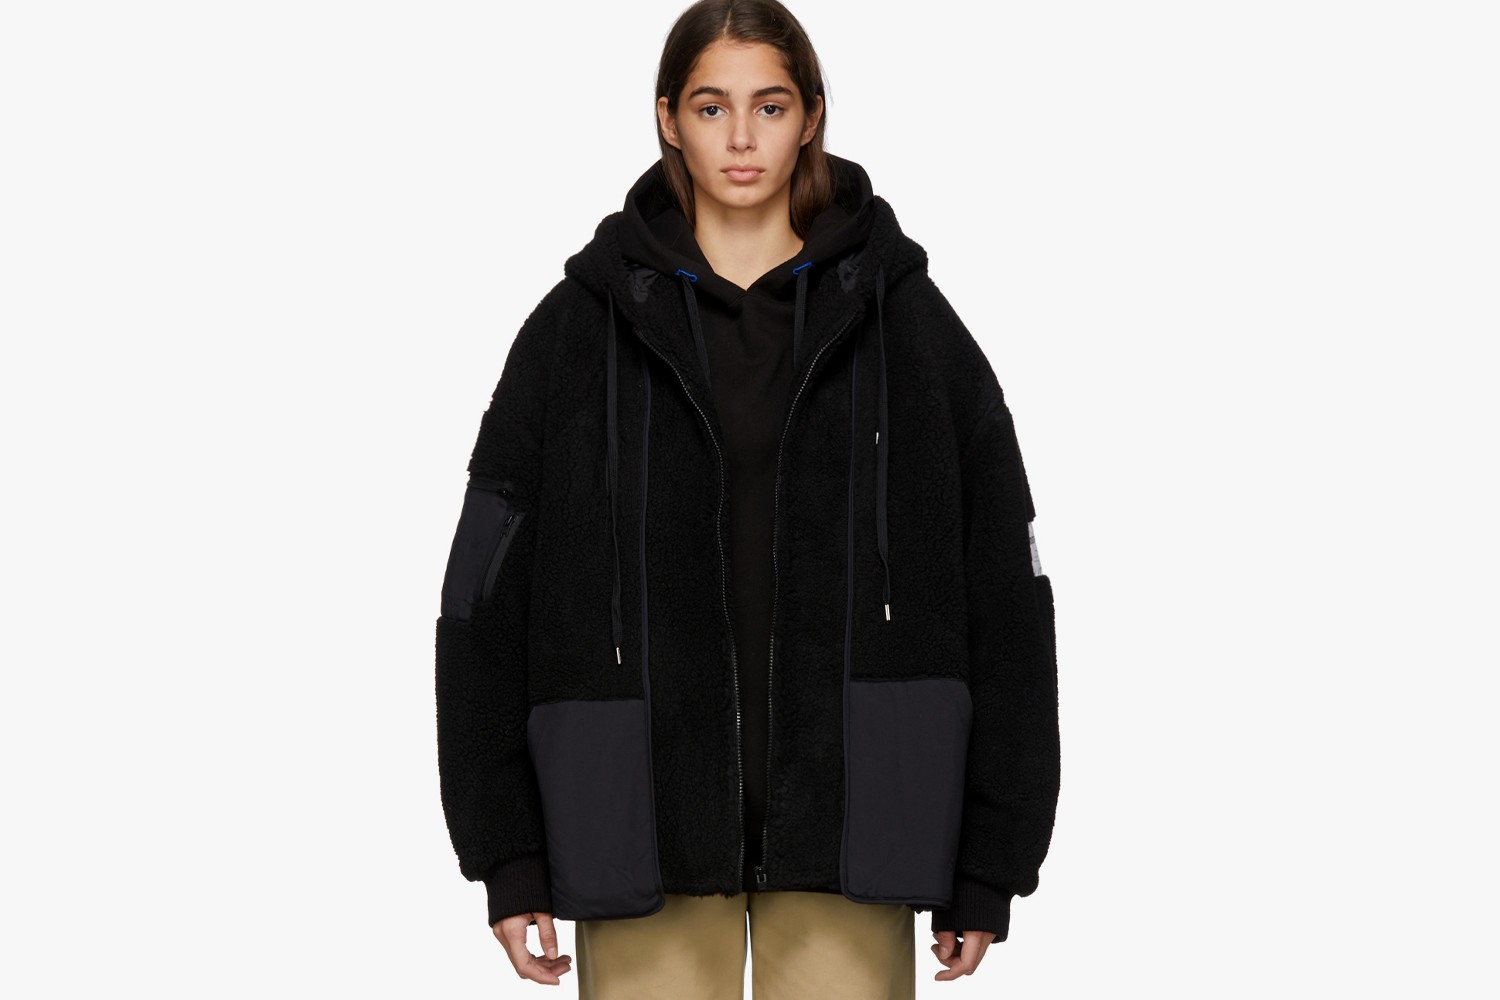 best coats jackets winter outerwear parkas puffers nike champion kith carhartt ader error adidas stella mccartney aries